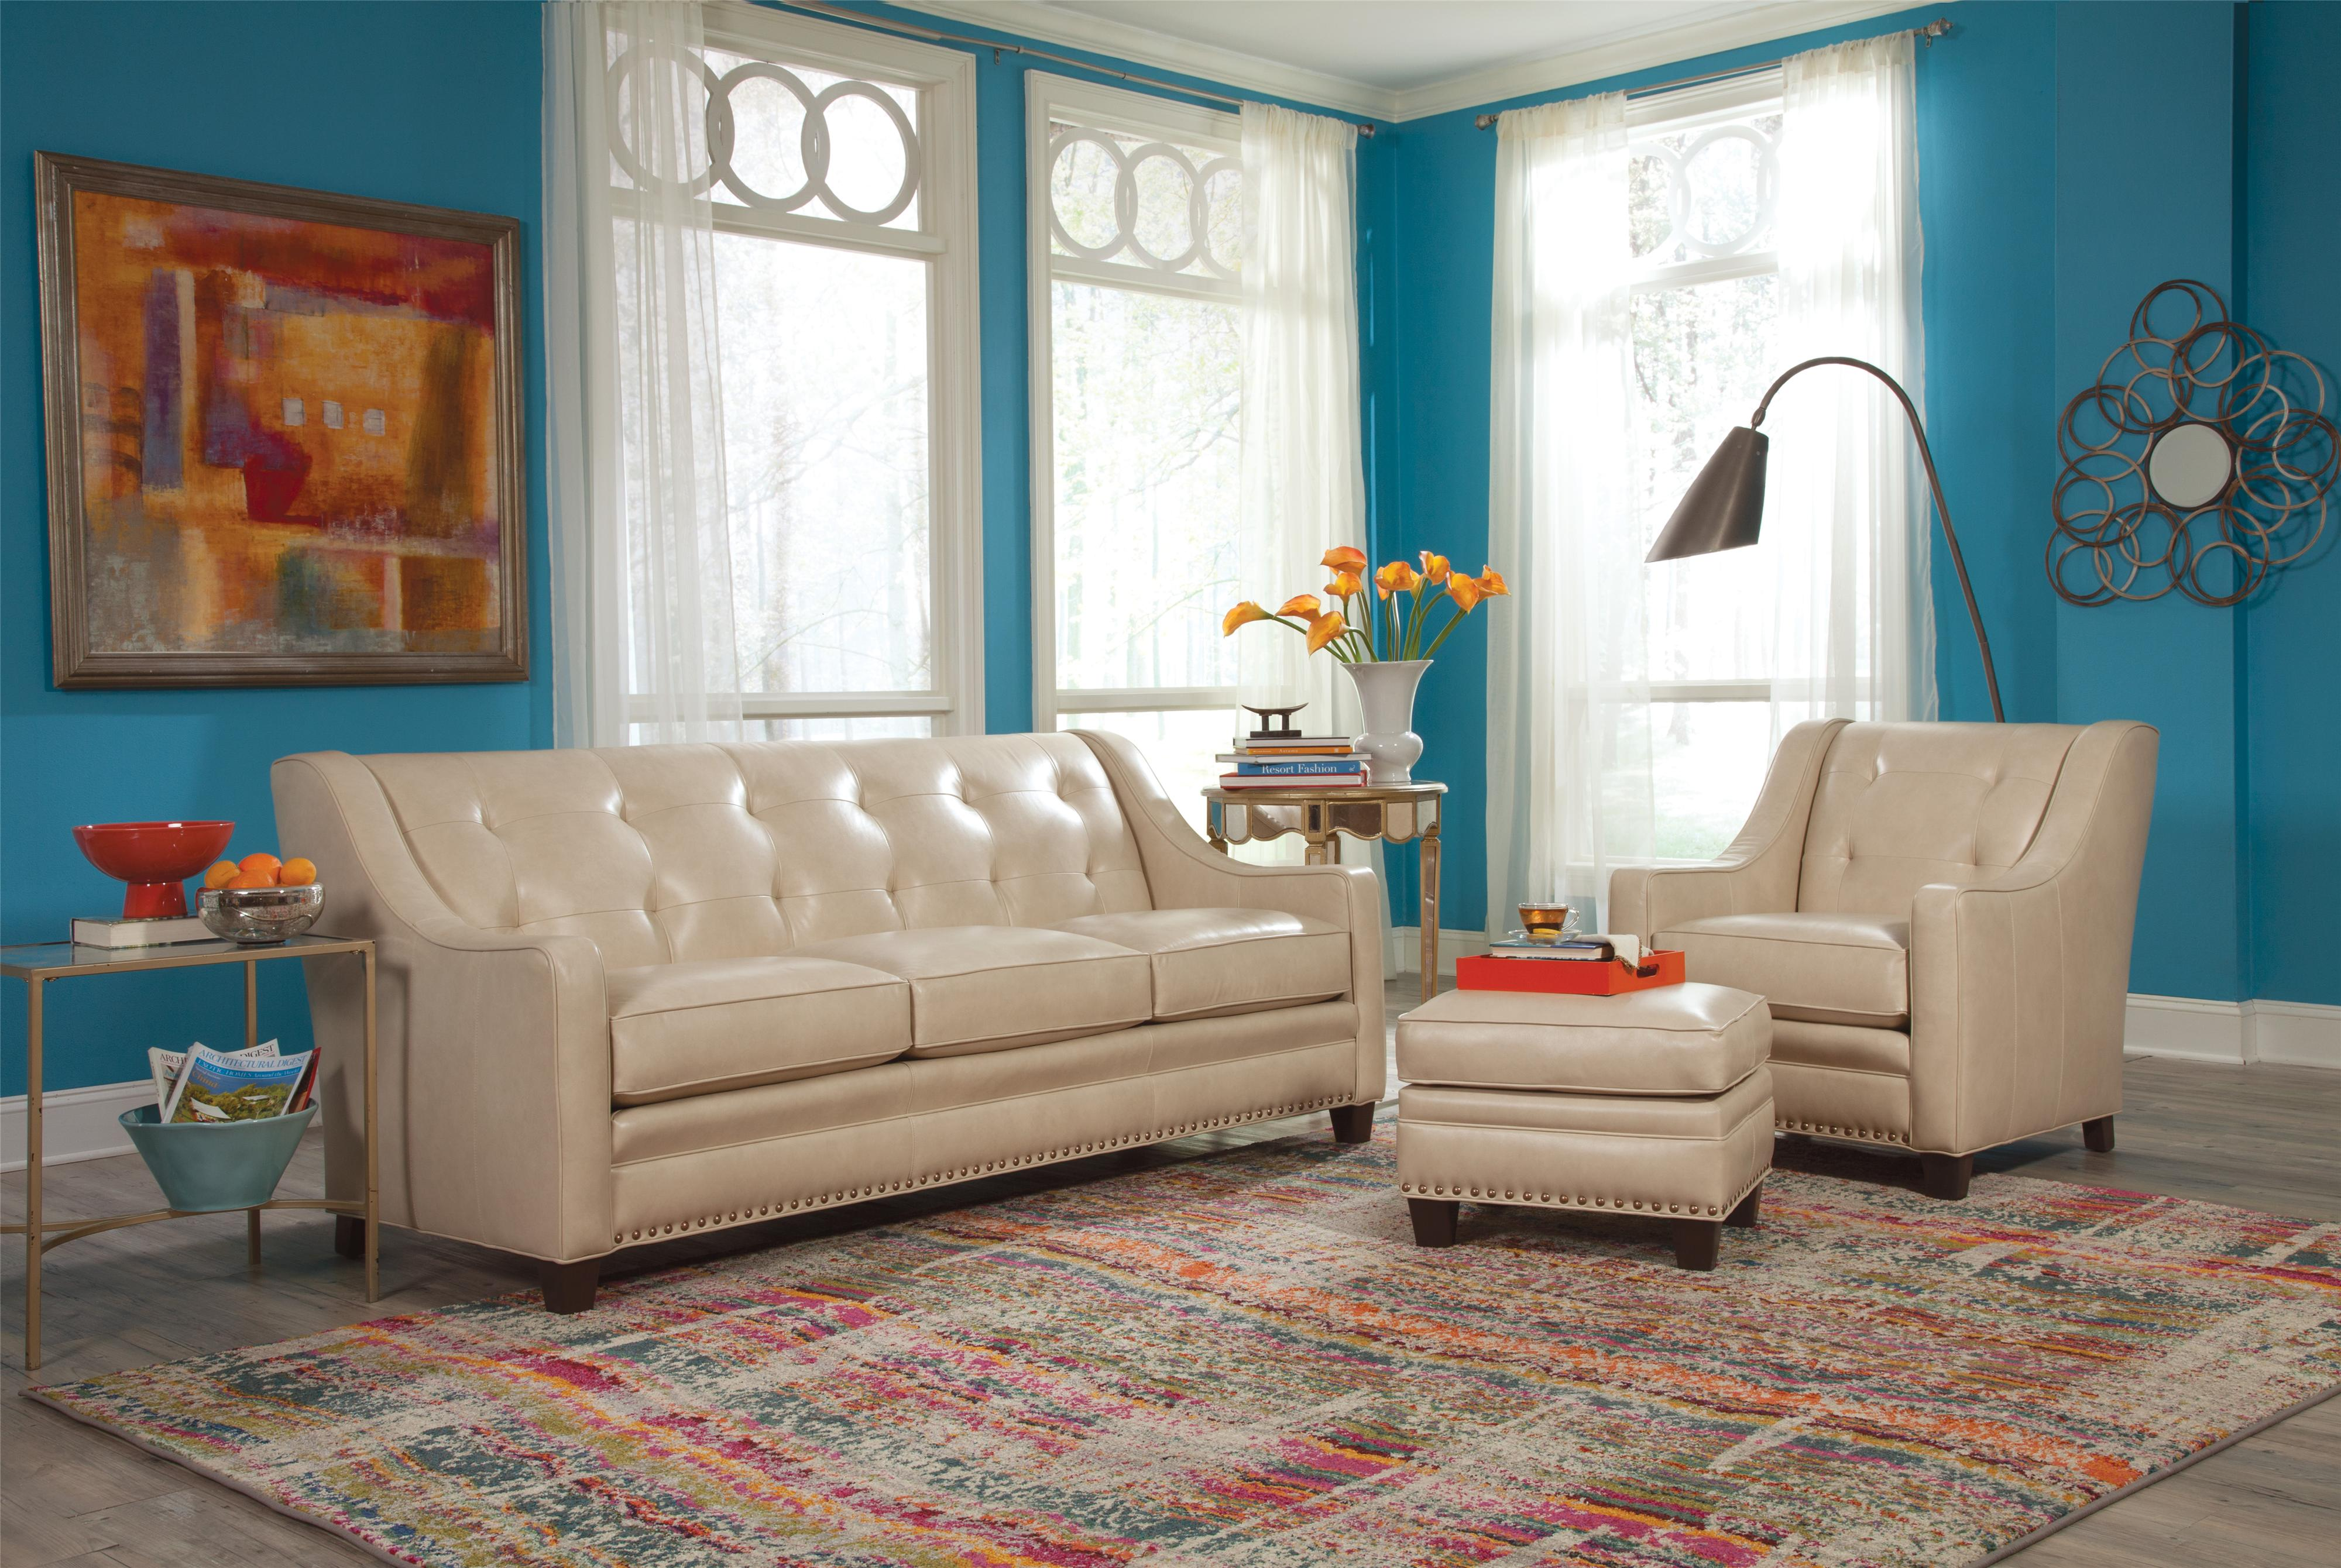 203L Living Room Group 1 by Smith Brothers at Sprintz Furniture